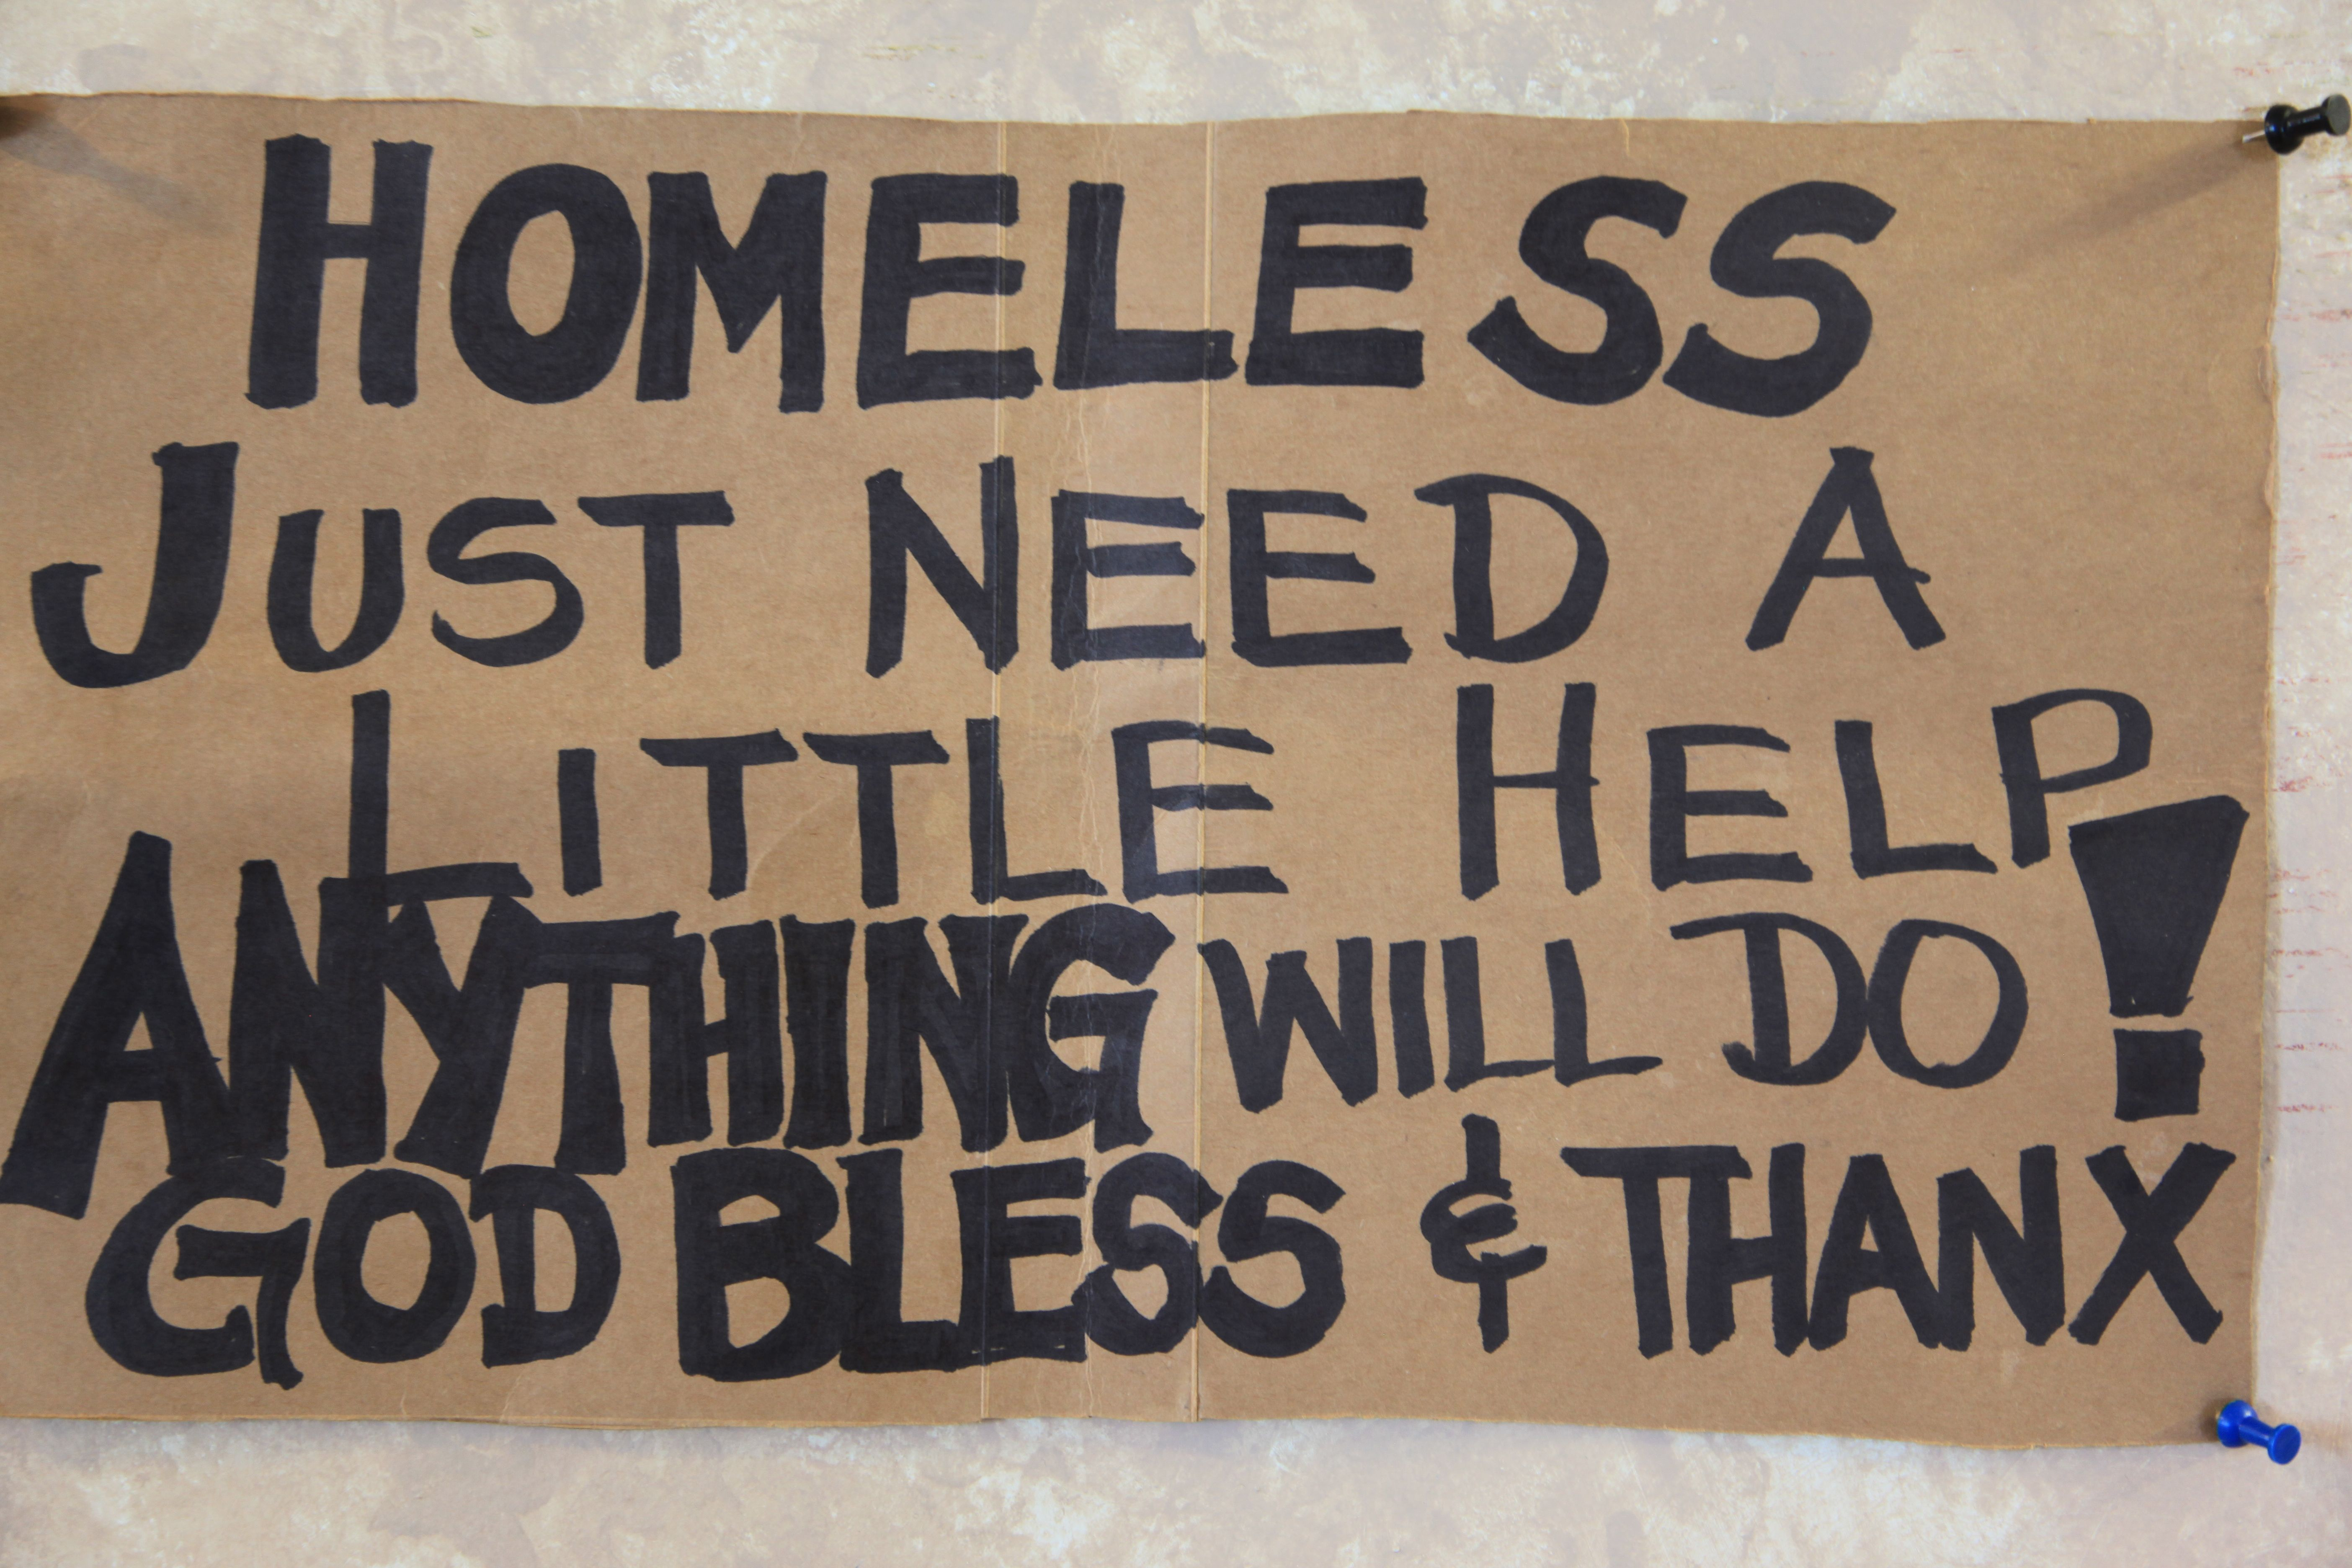 """""""Homeless just need a little help,anything will do! god bless & thanx."""""""